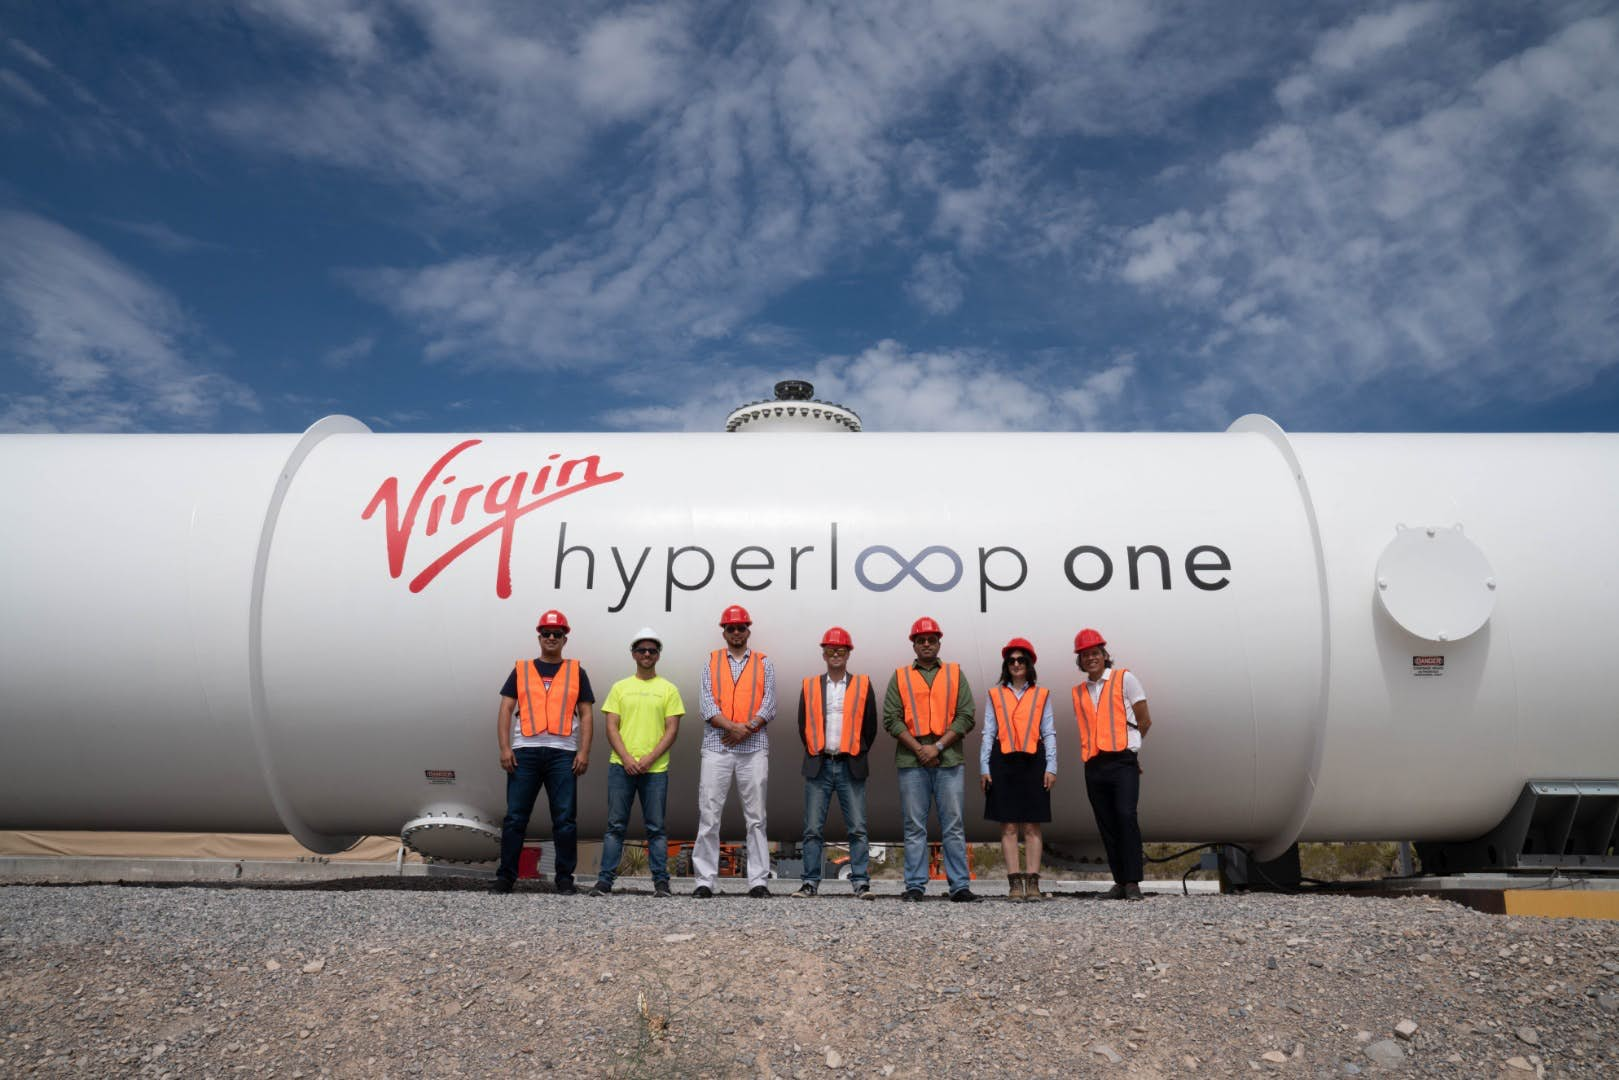 Virgin Hyperloop One Is Building A Hyperloop Track In Saudi Arabia